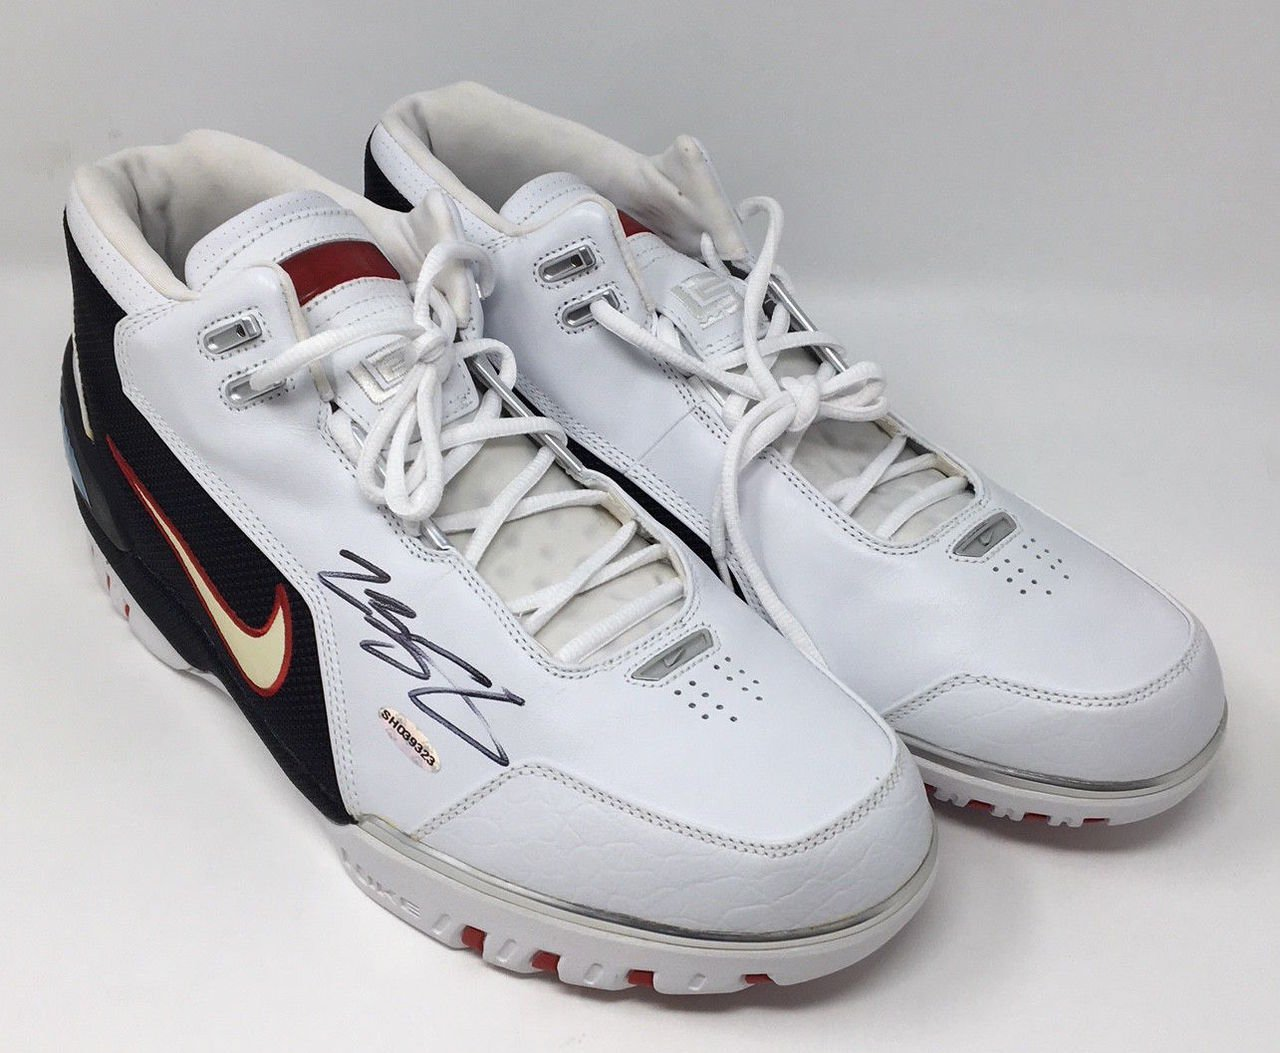 ce9ee5418e1 Amazon.com  LEBRON JAMES Signed Original Air Zoom Generation Rookie Year  Size 15 Shoes UDA  Sports Collectibles